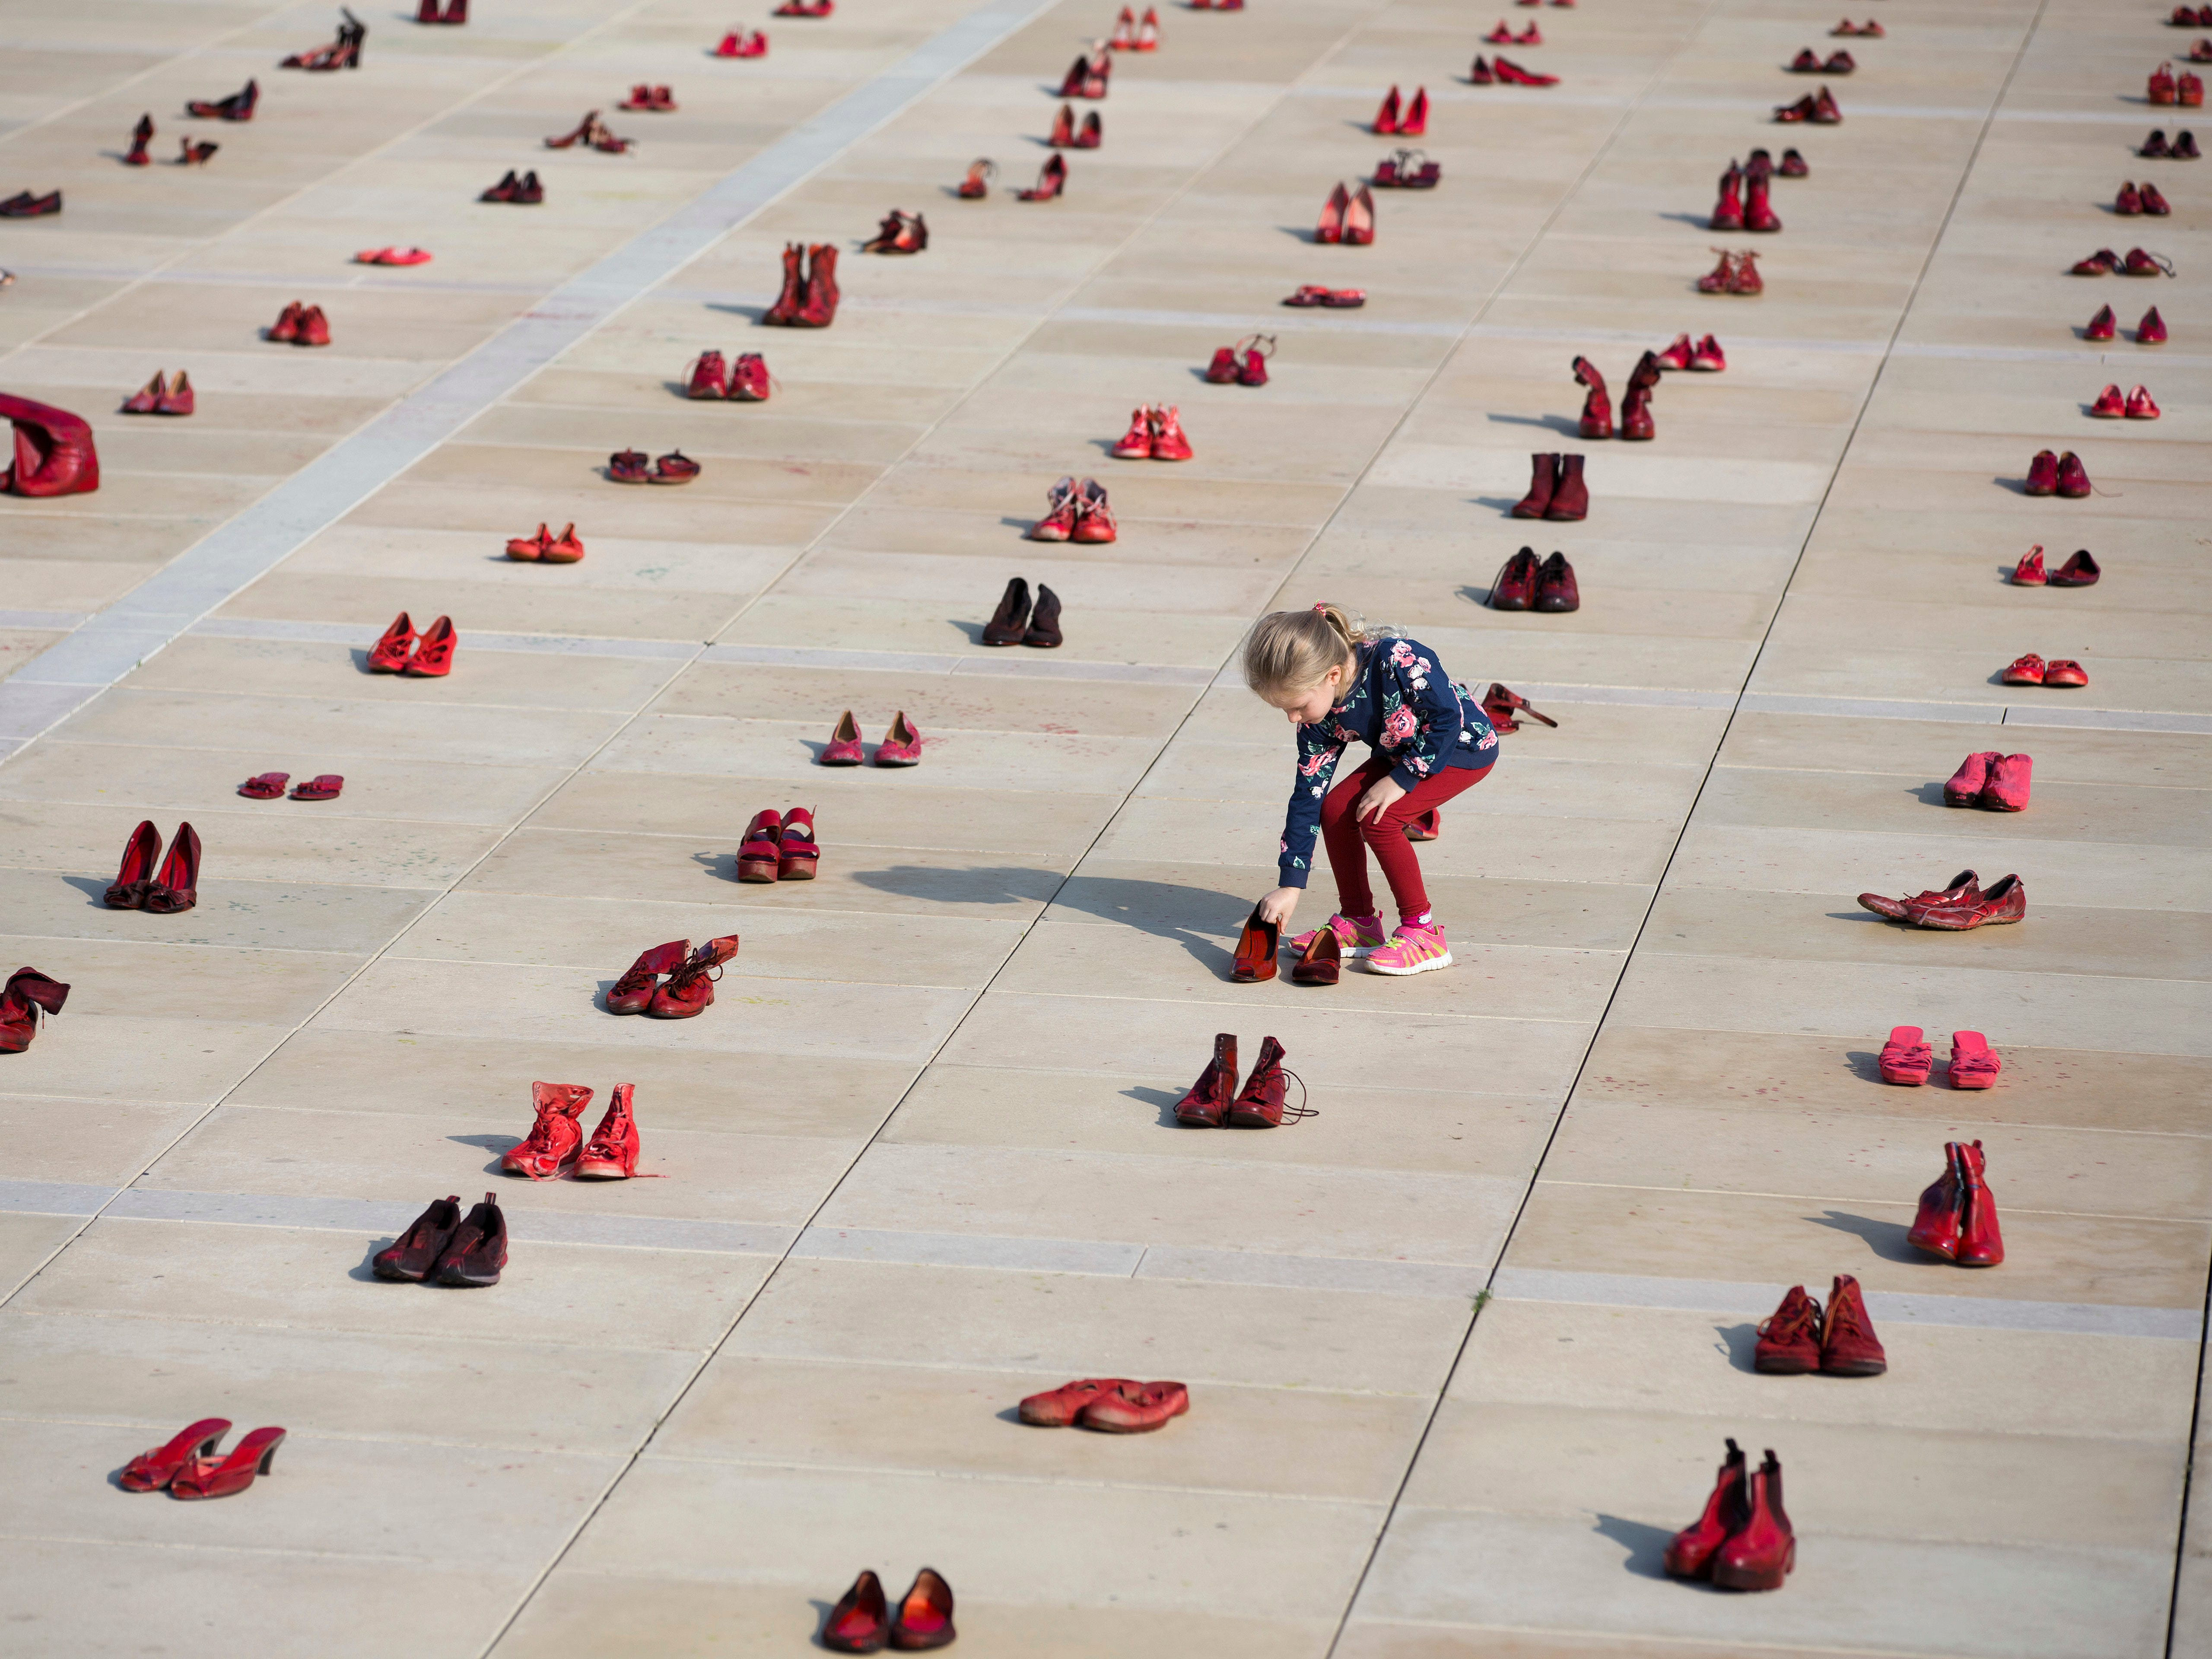 A display of hundreds of red shoes signifies protests against violence toward women in Israel at Habima Square in Tel Aviv, Israel, Tuesday, Dec. 4, 2018.